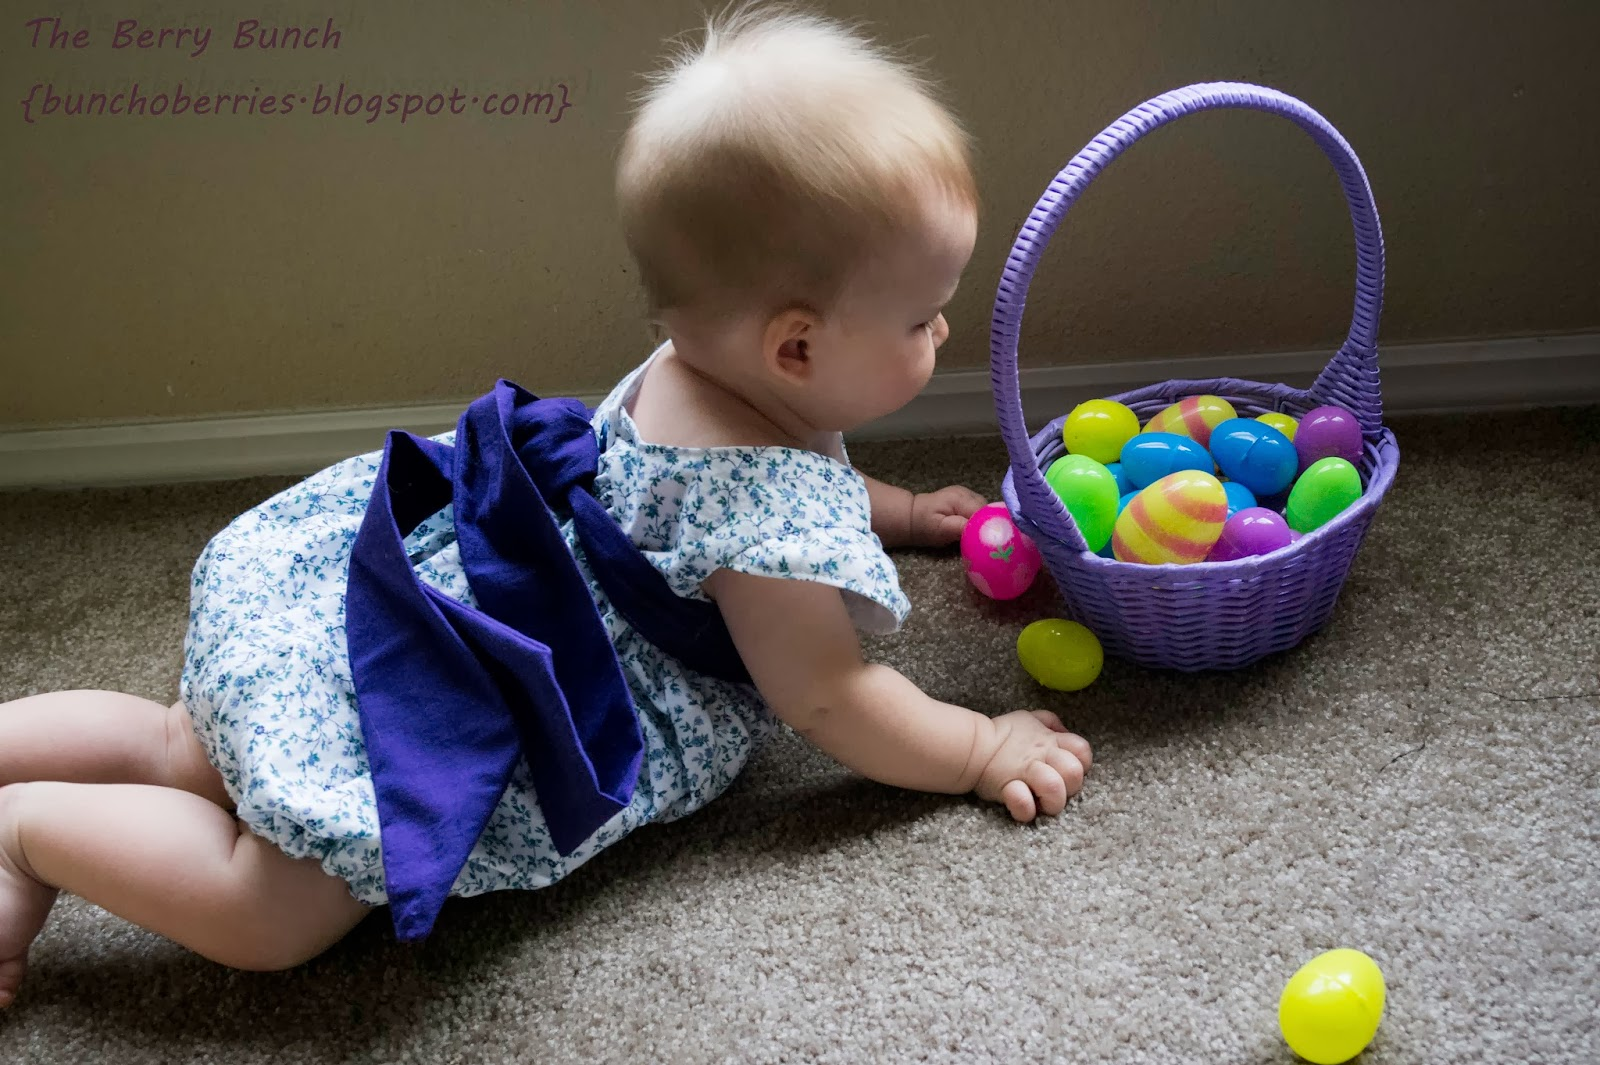 The Berry Bunch: Kenzie's Party Dress - Blog Tour 2/14-2/21 {EYMM Patterns}